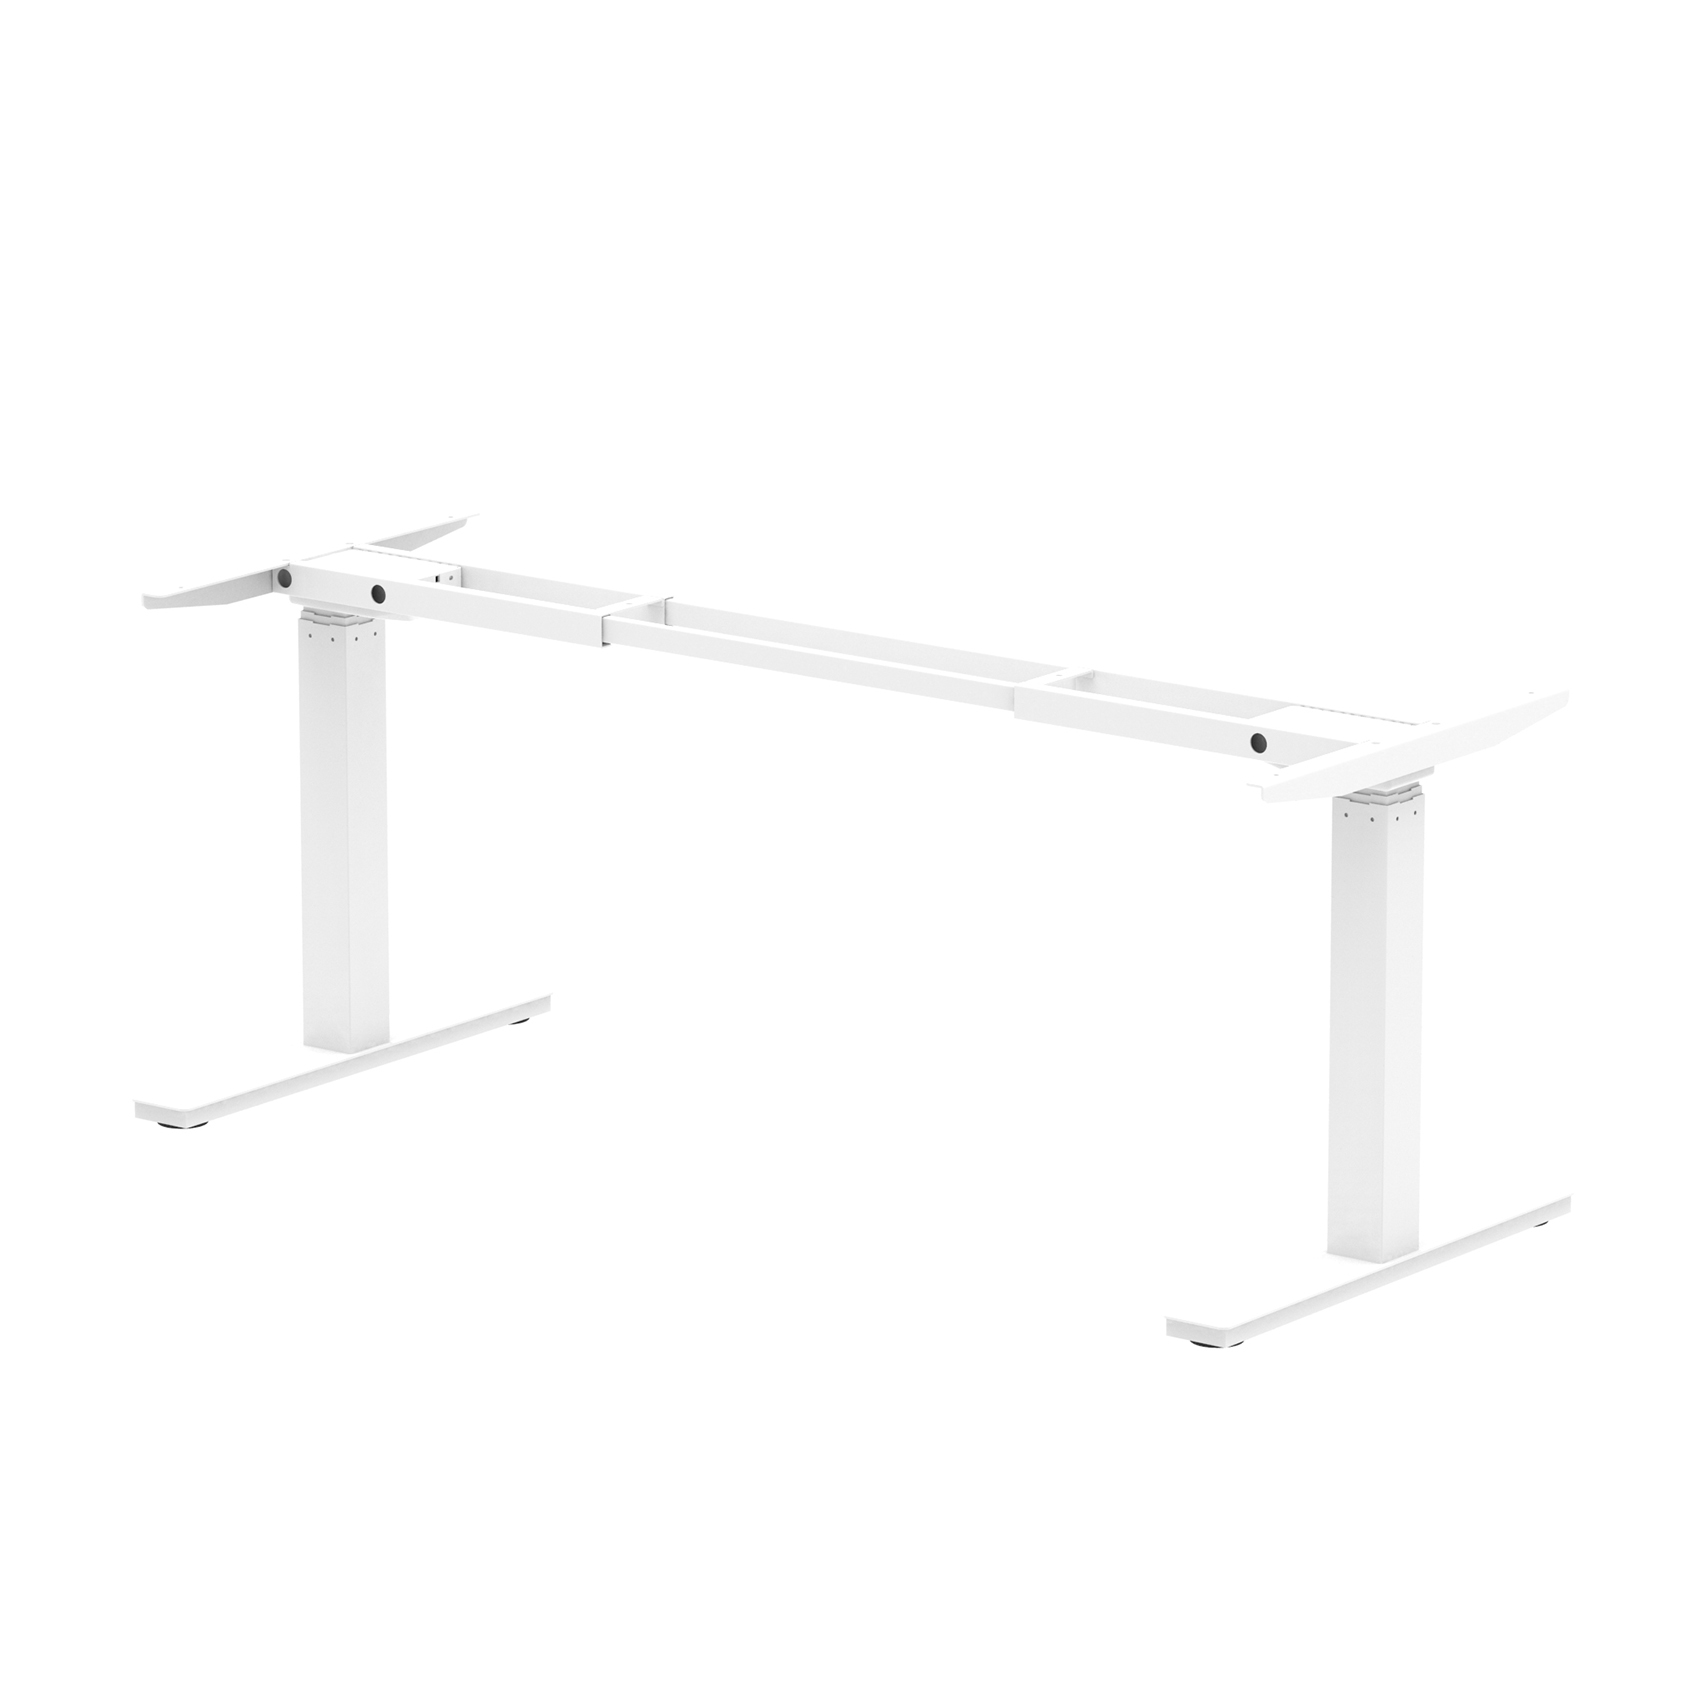 Trexus Sit Stand Leg Pack 1600mm width White Ref HA0002